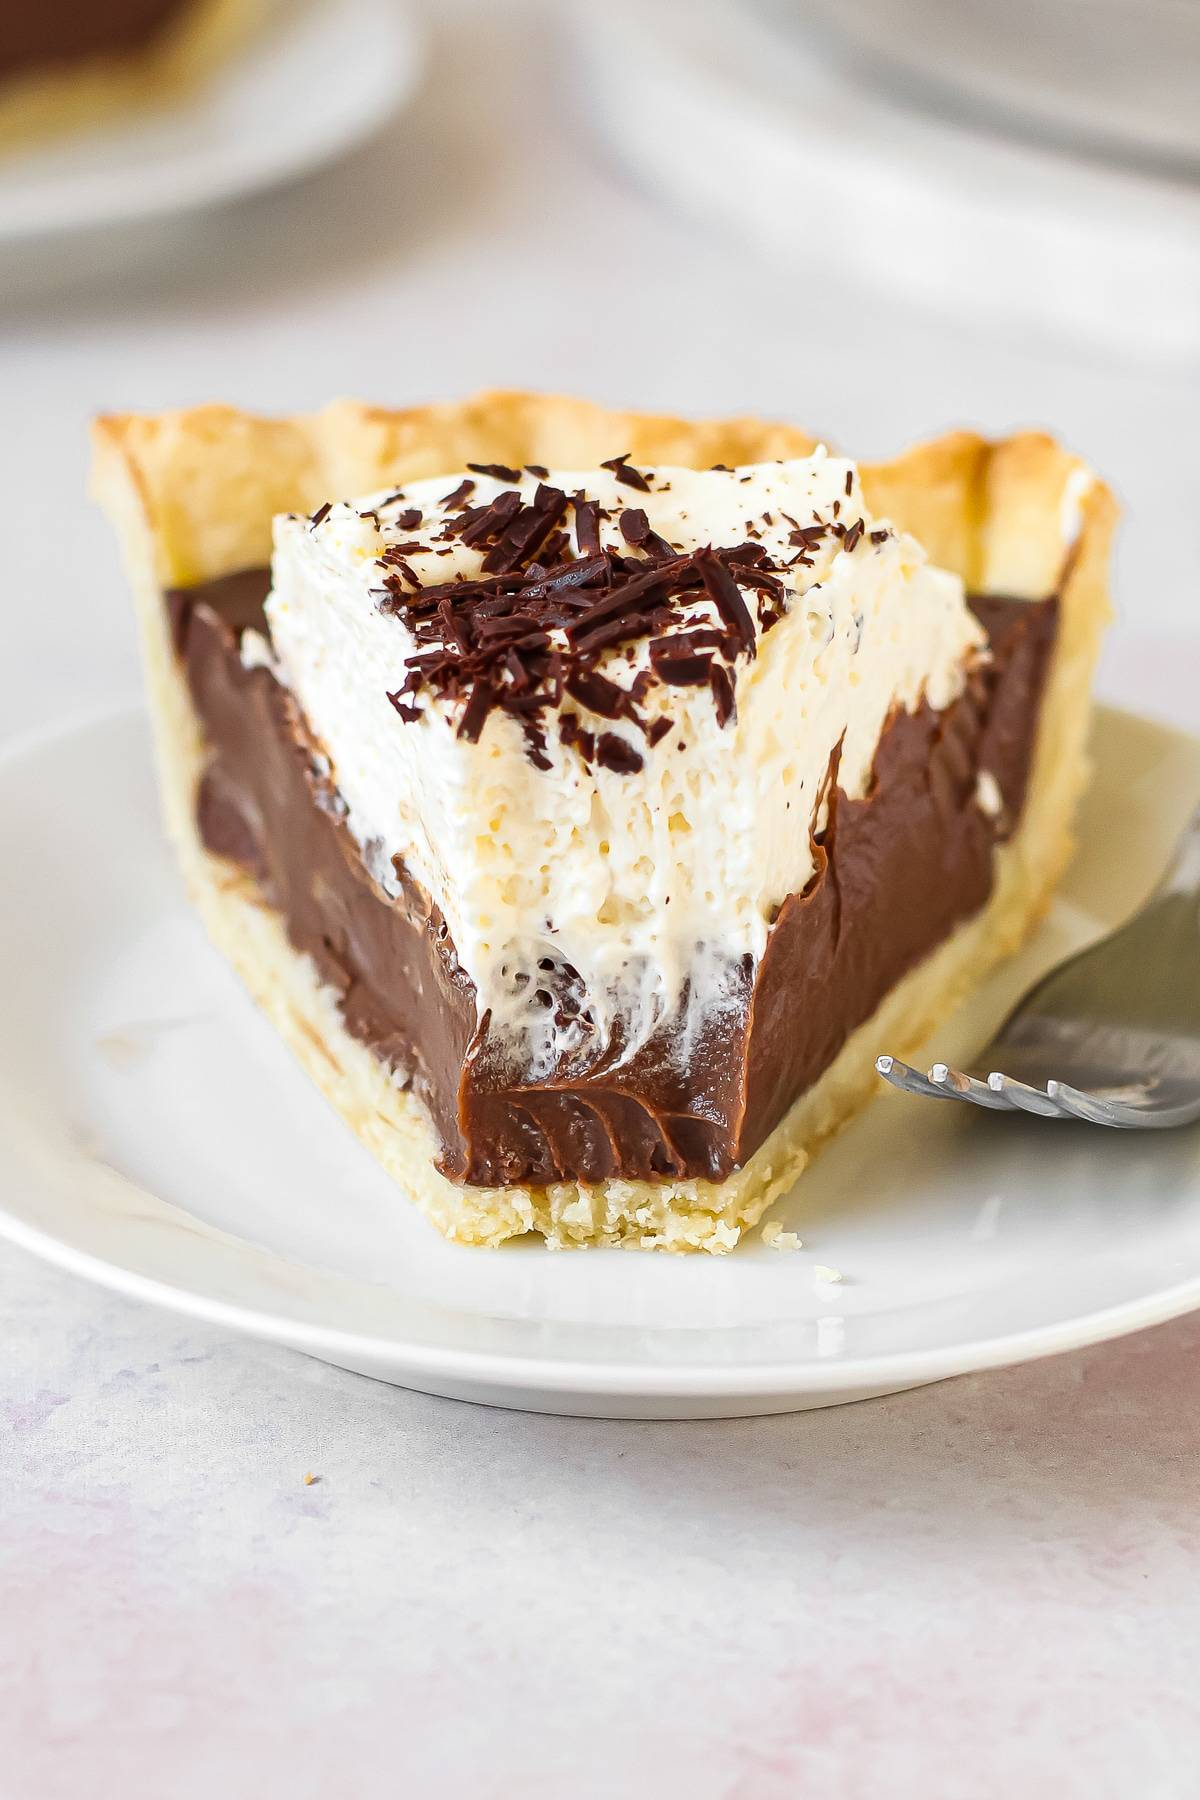 A slice of chocolate cream pie with a forkful taken out of it on a plate.